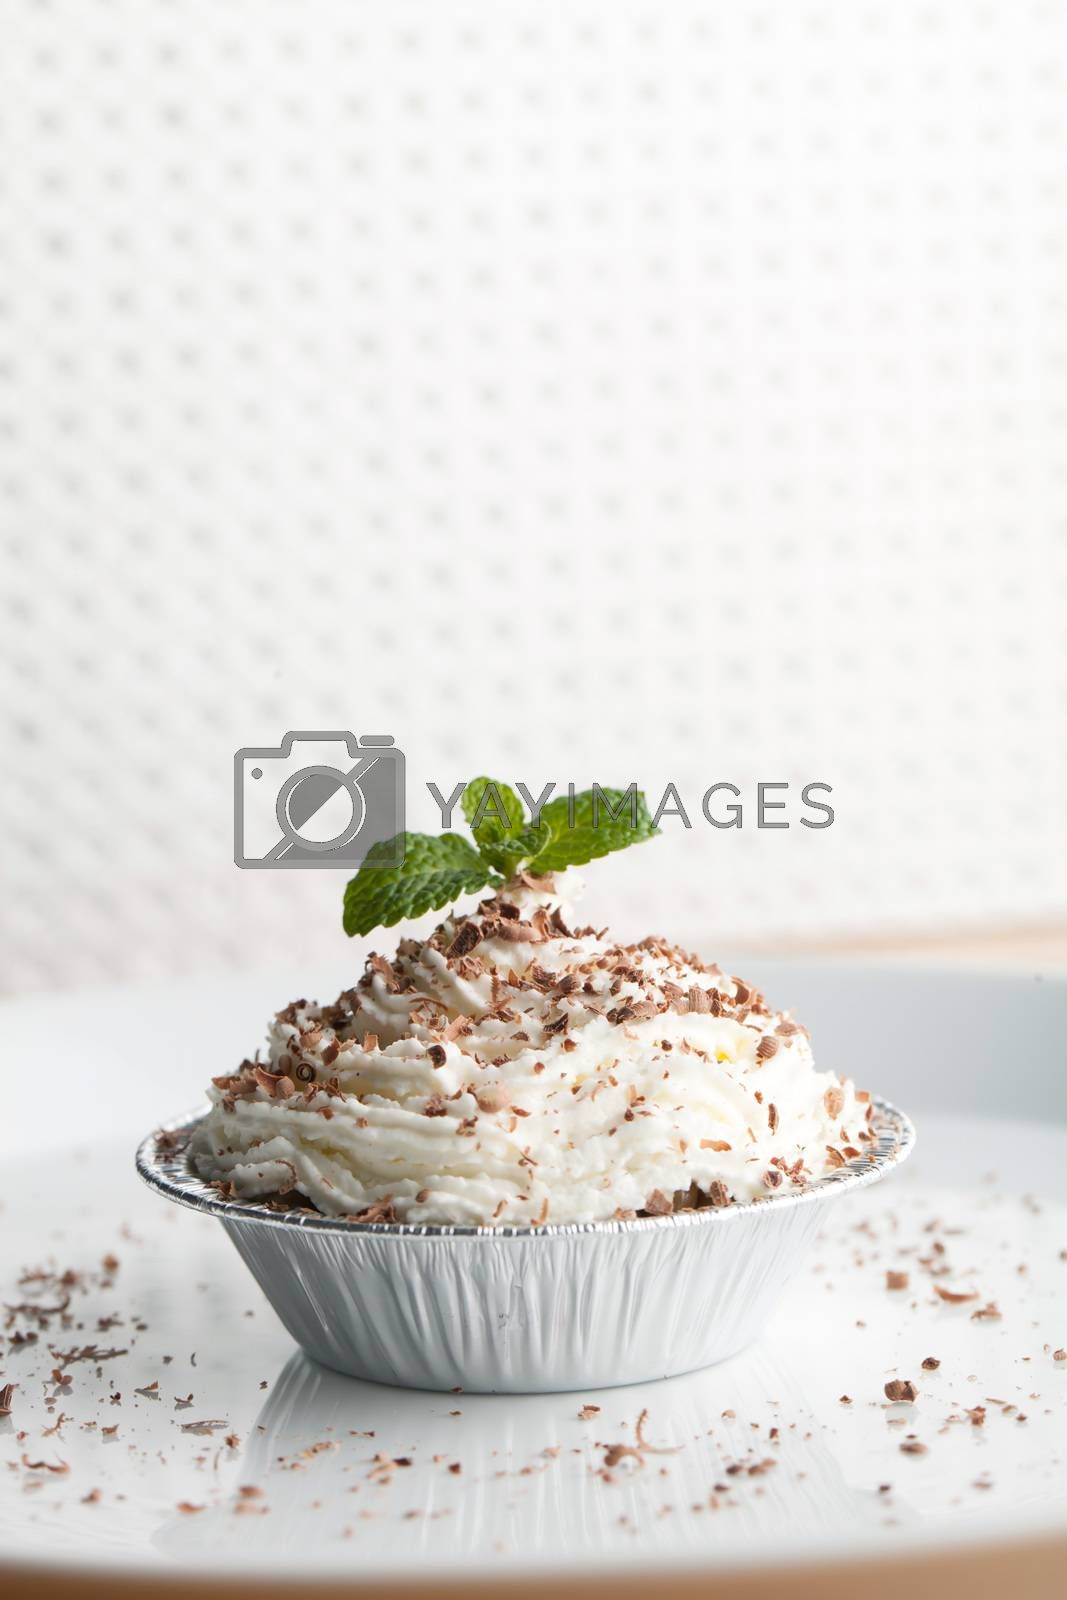 Parfait dessert with fresh whipped cream and chocolate shavings. Shallow depth of field.